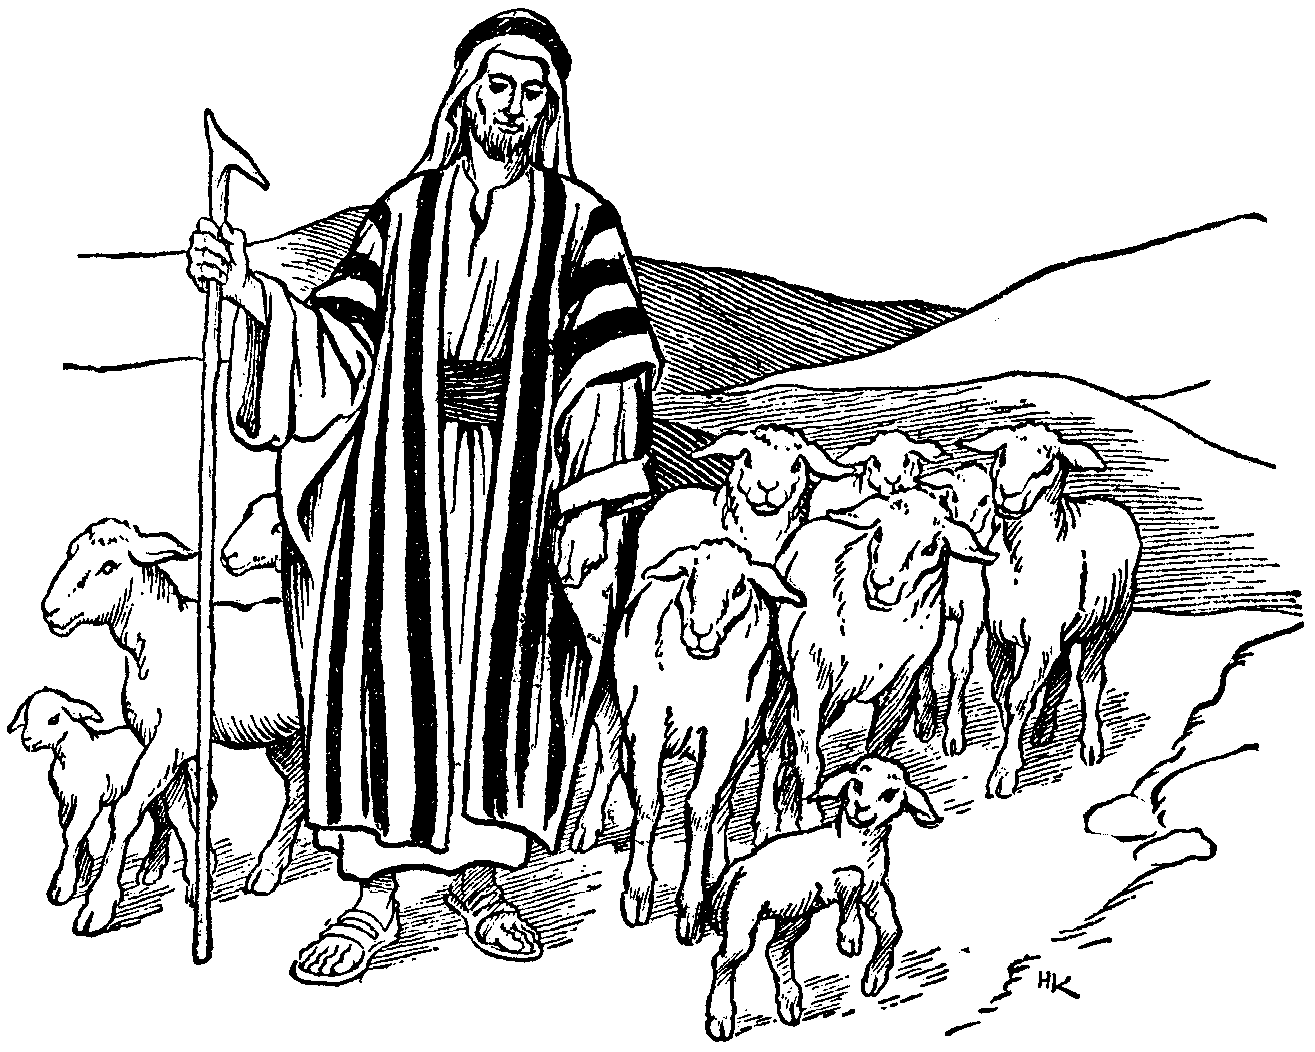 Good shepherd clipart image library Free Shepherd Cliparts, Download Free Clip Art, Free Clip Art on ... image library